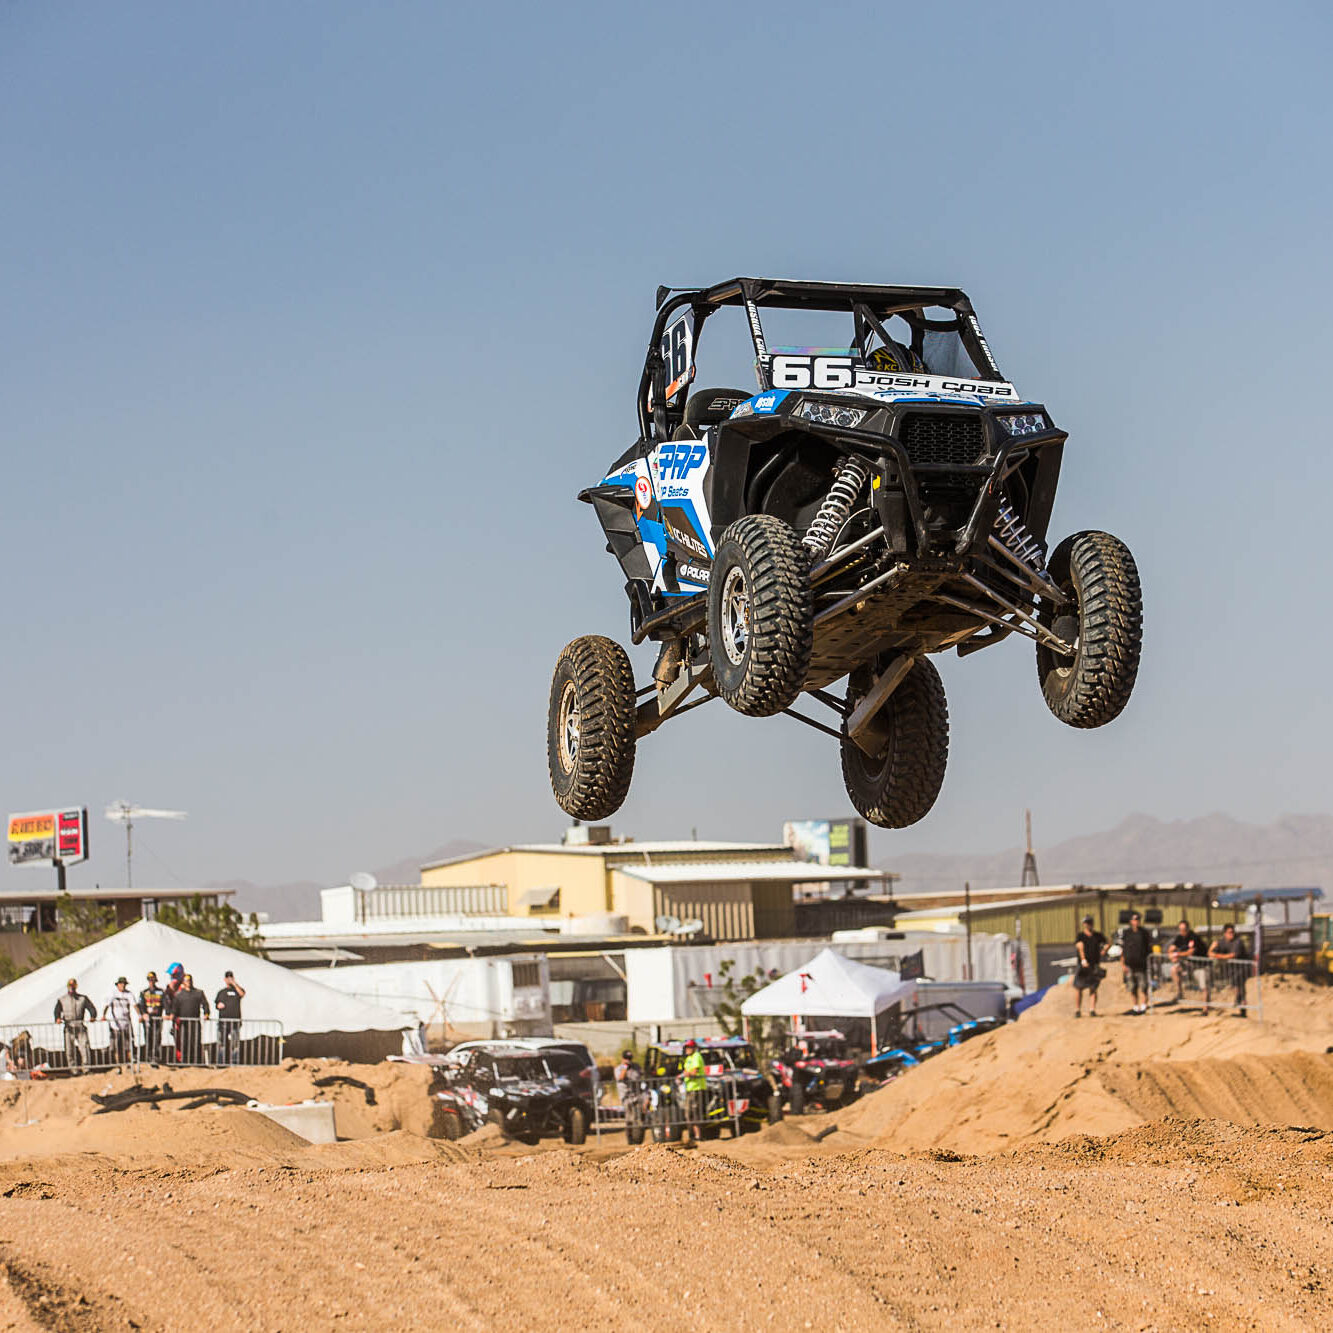 Camp RZR West-Glamis